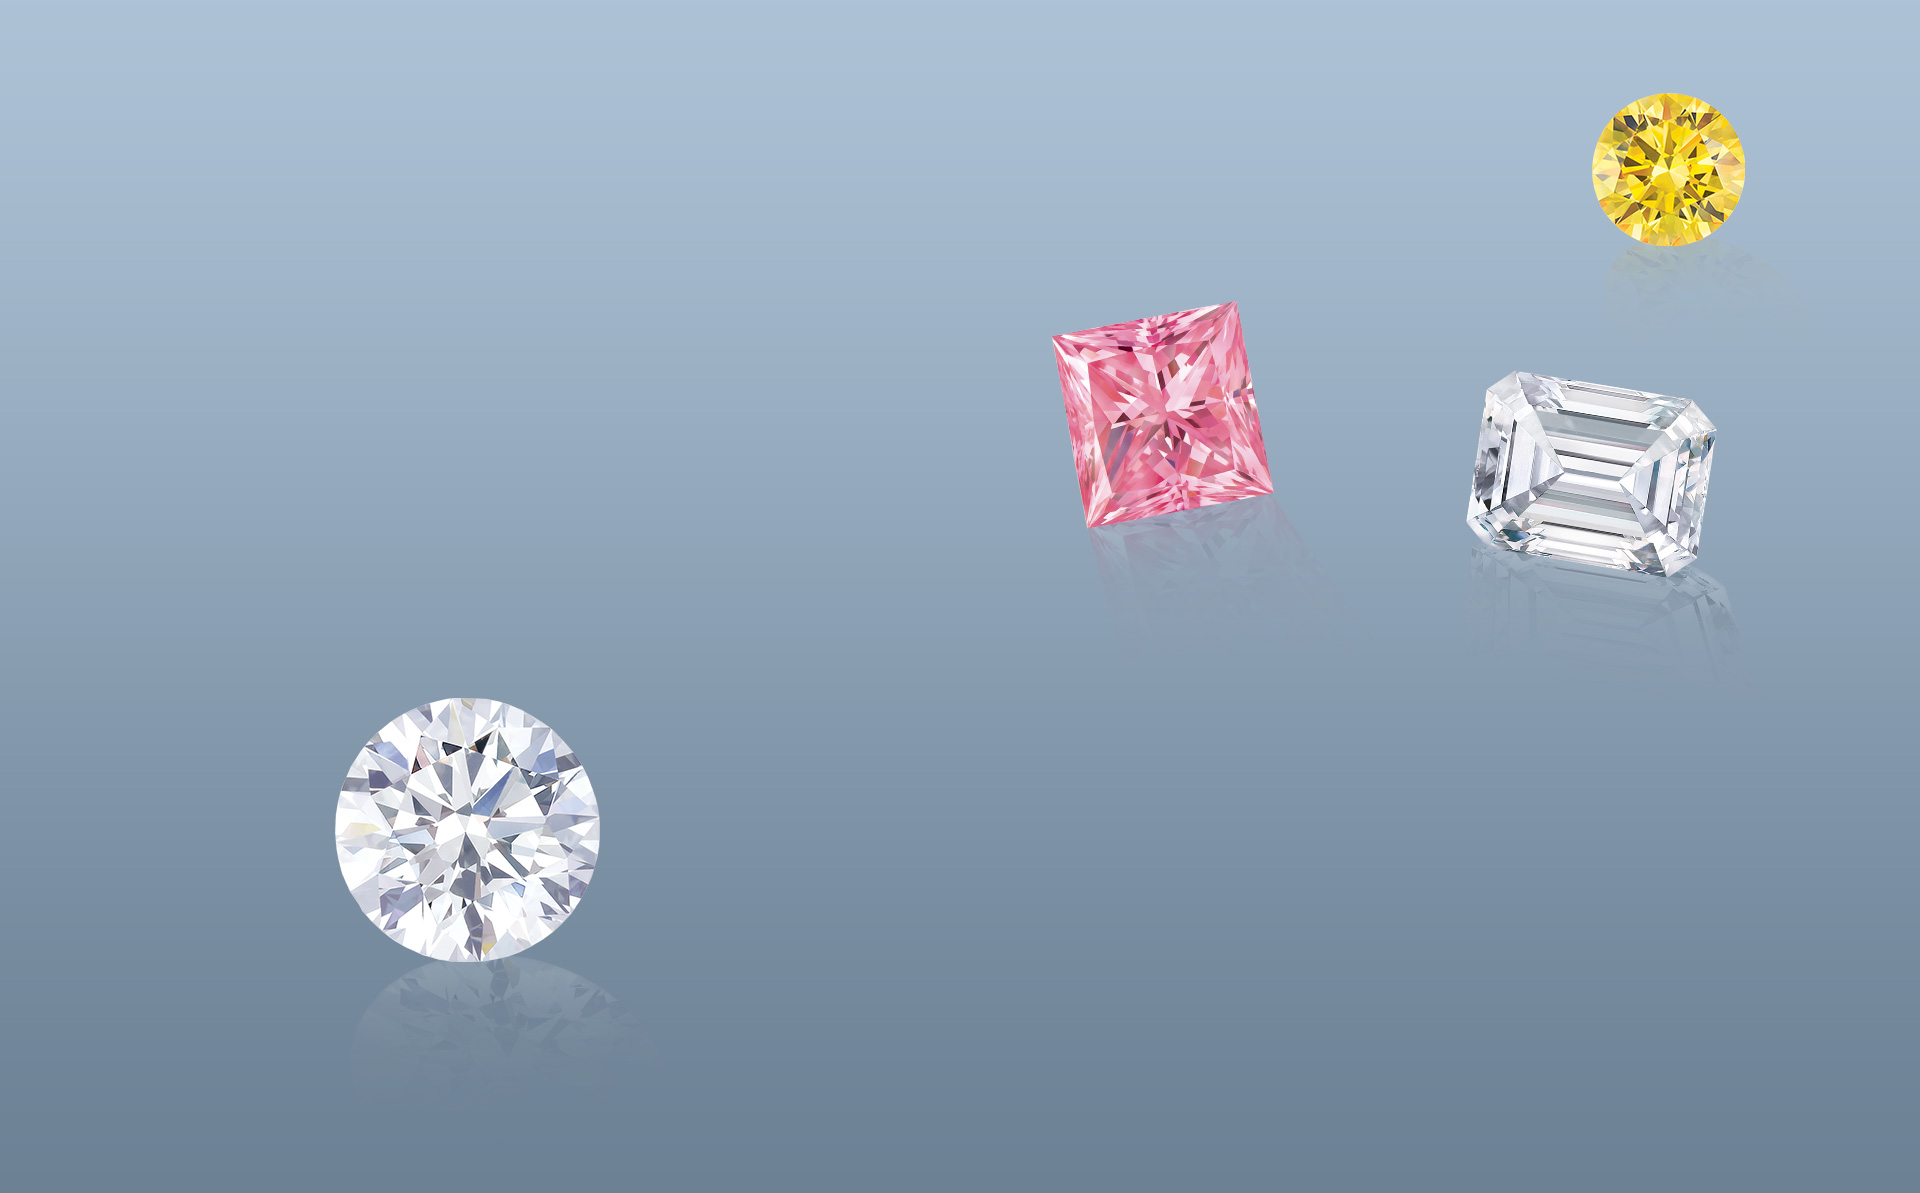 forever lede lab rck syntheticdiamonds synthetic diamonds diamond is racked a grown